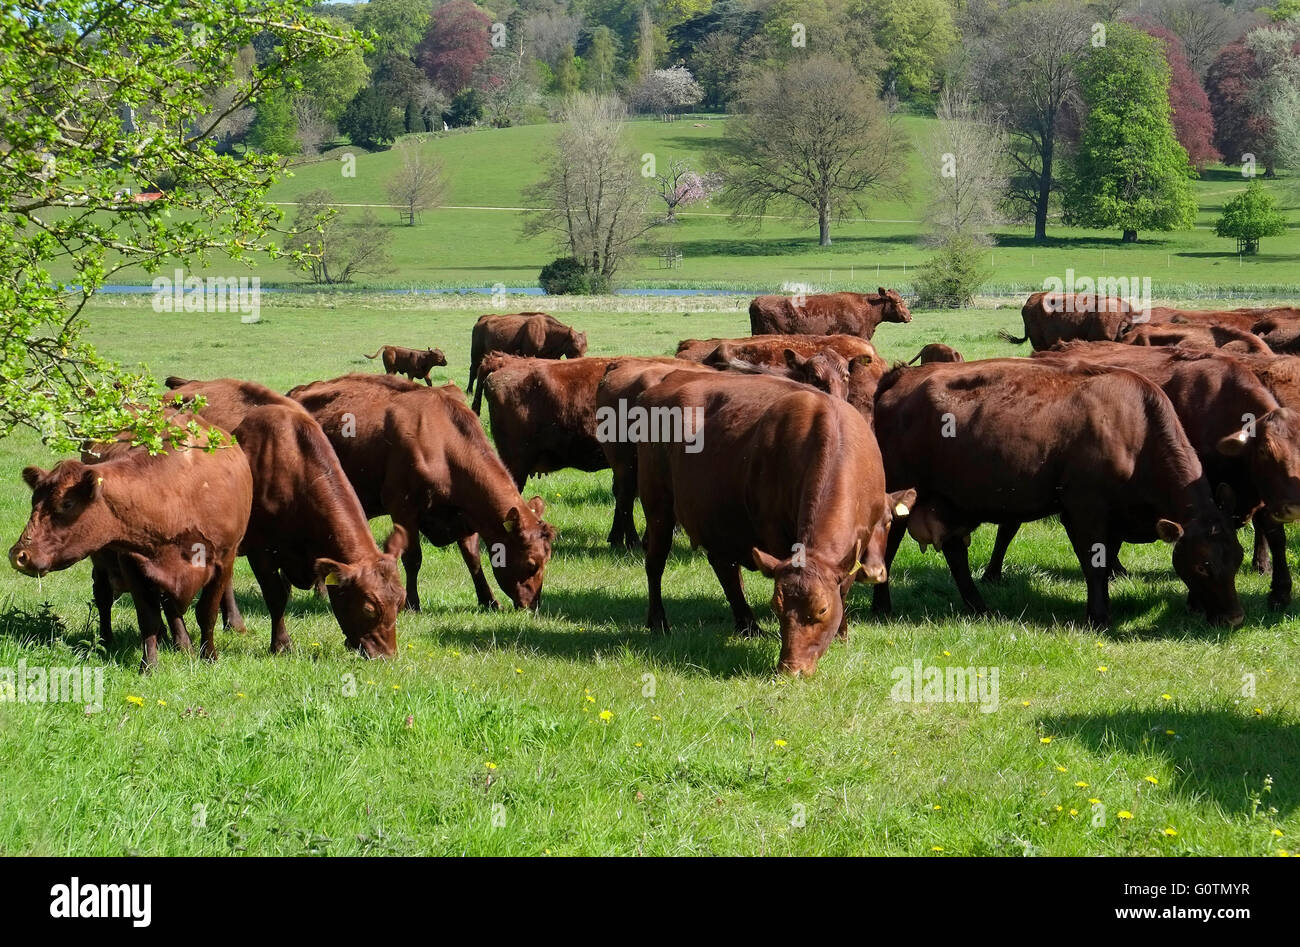 red poll dairy cattle on the bayfield hall estate, north norfolk, england - Stock Image